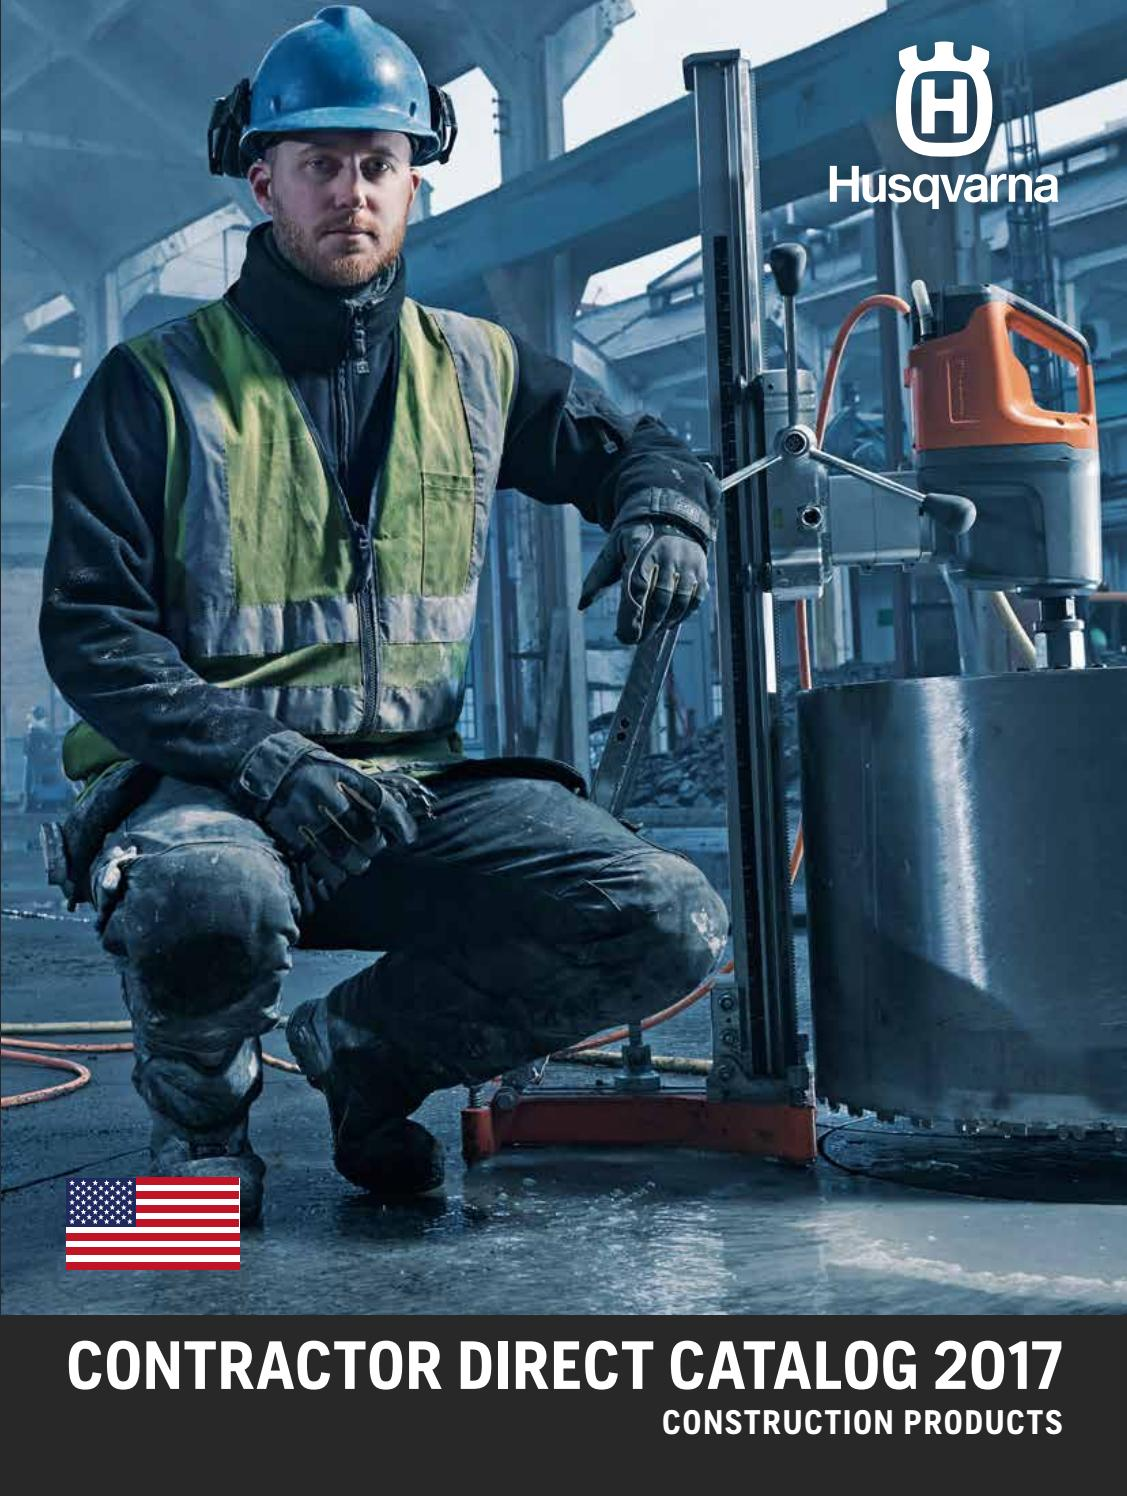 2017 Husqvarna Us Contractor Direct Catalog By Gasoline Generator Accessoriesspare Partscircuit Breaker Fits For Construction Products Issuu